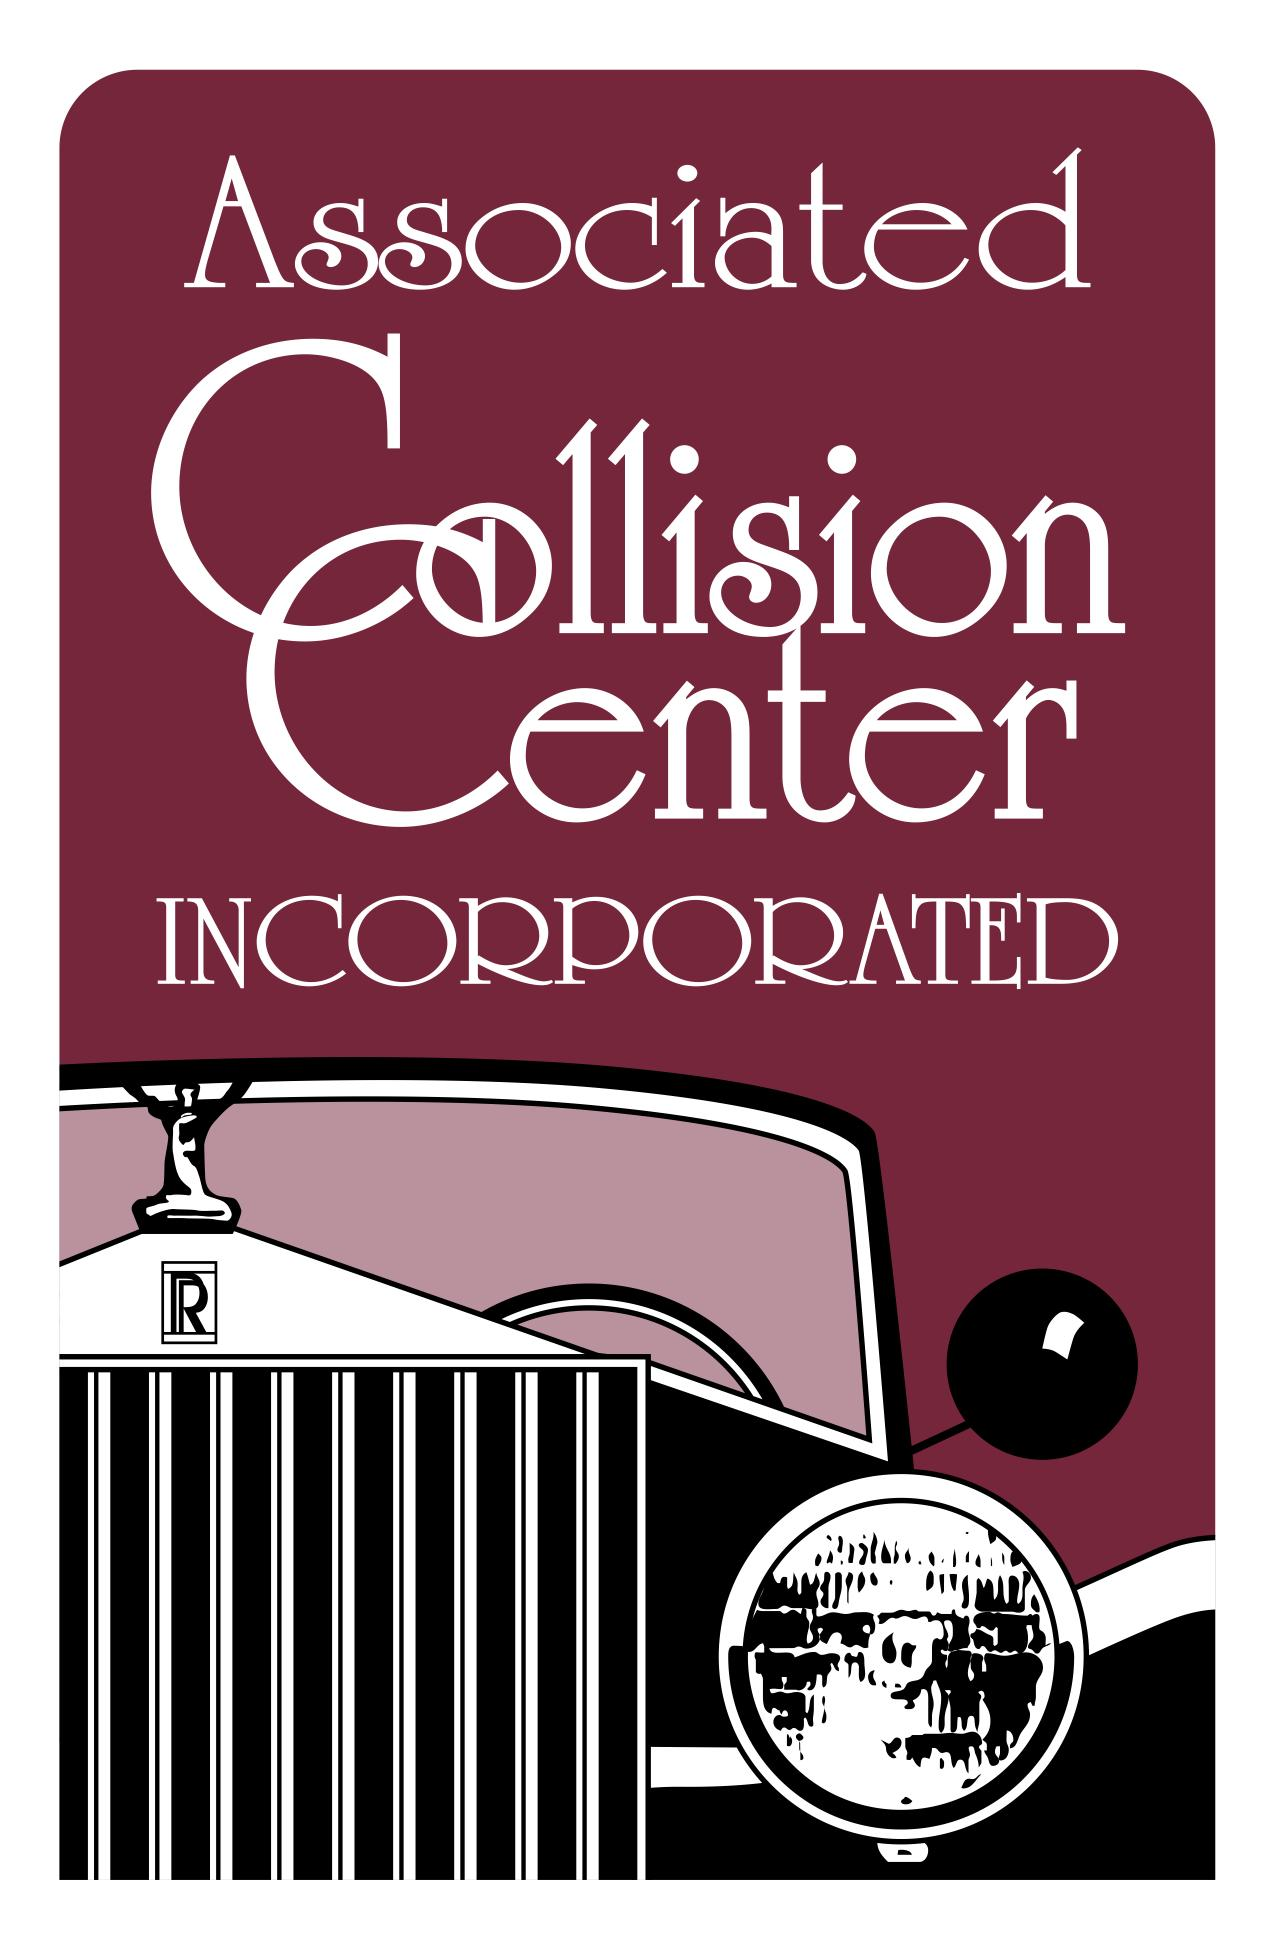 Associated Collision Center Inc.